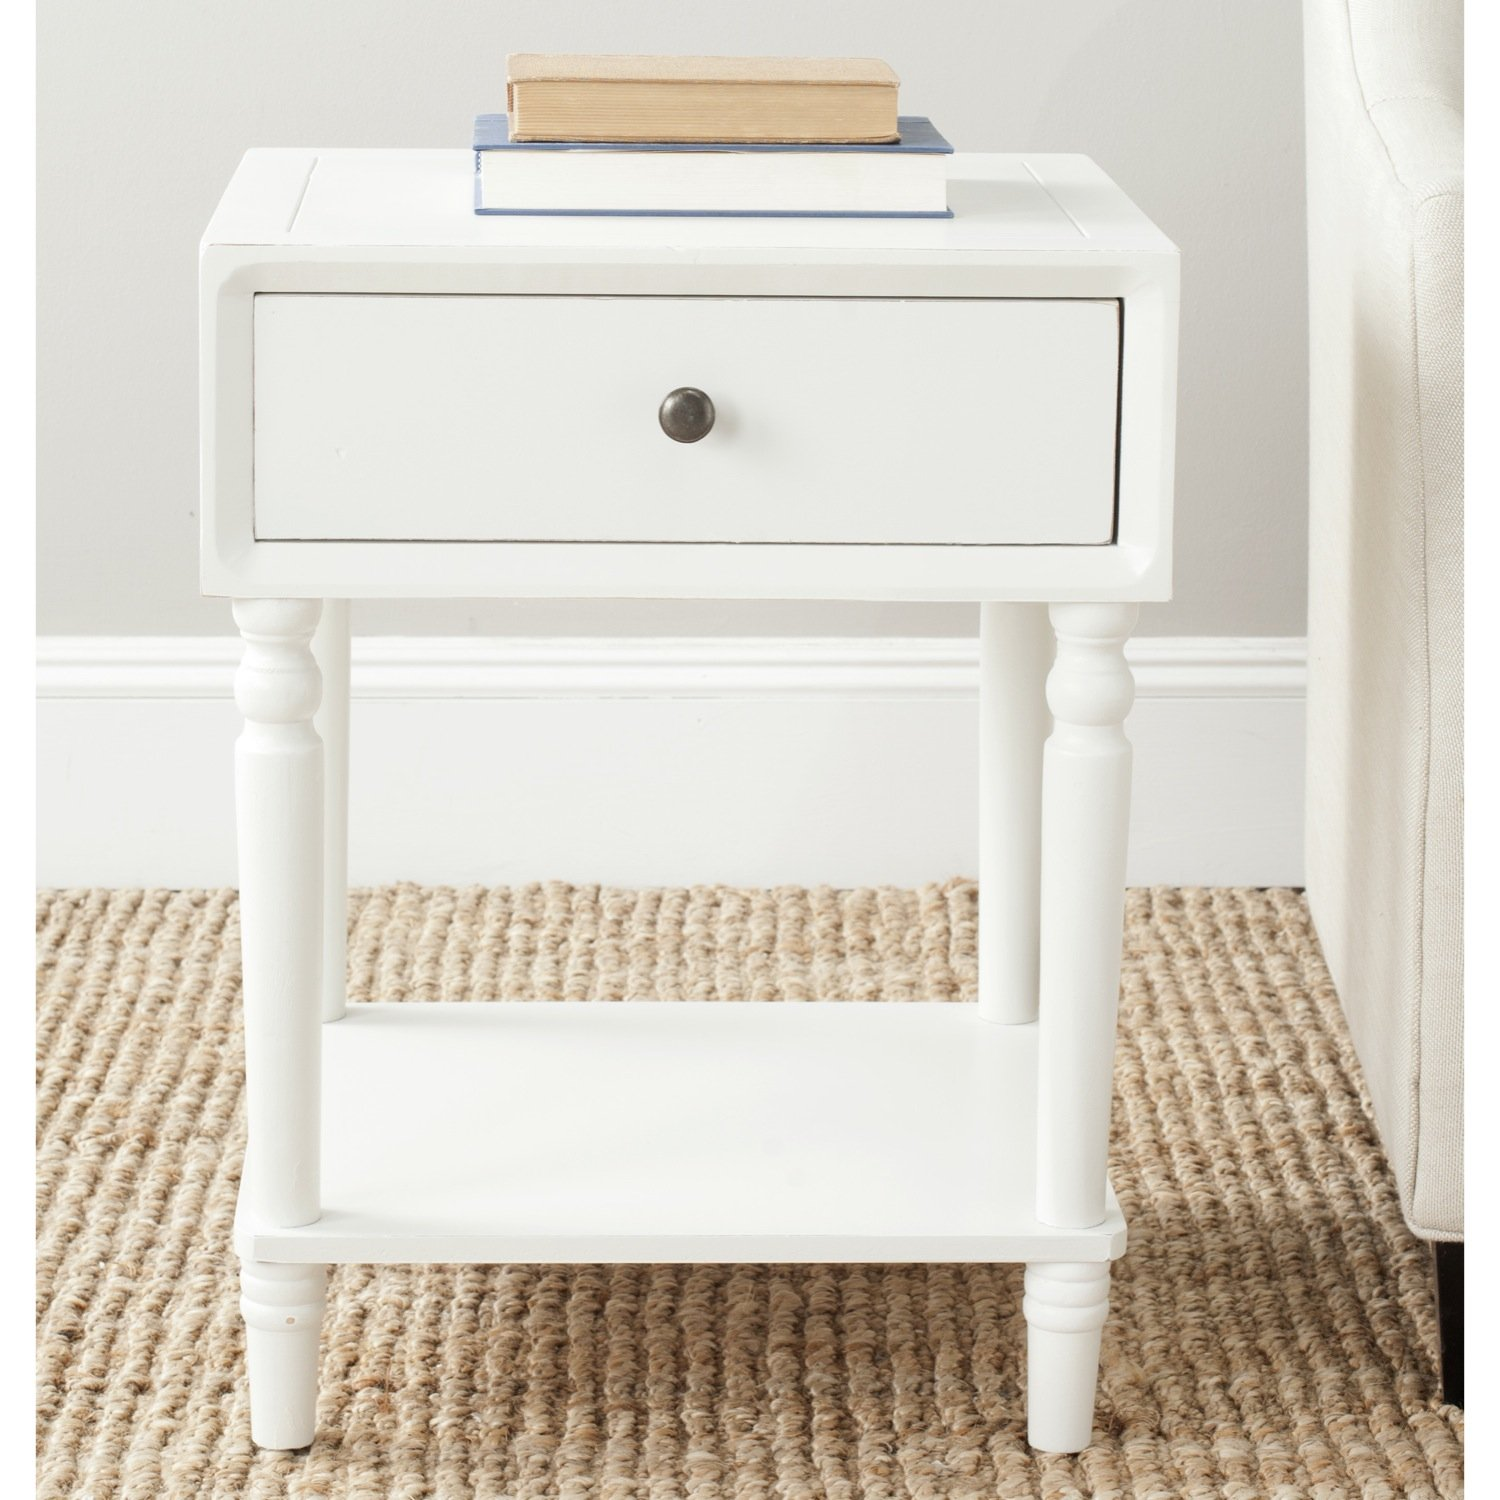 safavieh american homes collection siobhan shady white janika accent table off kitchen dining metal stools target teak rocking chairs barn door closet doors knotty pine wood